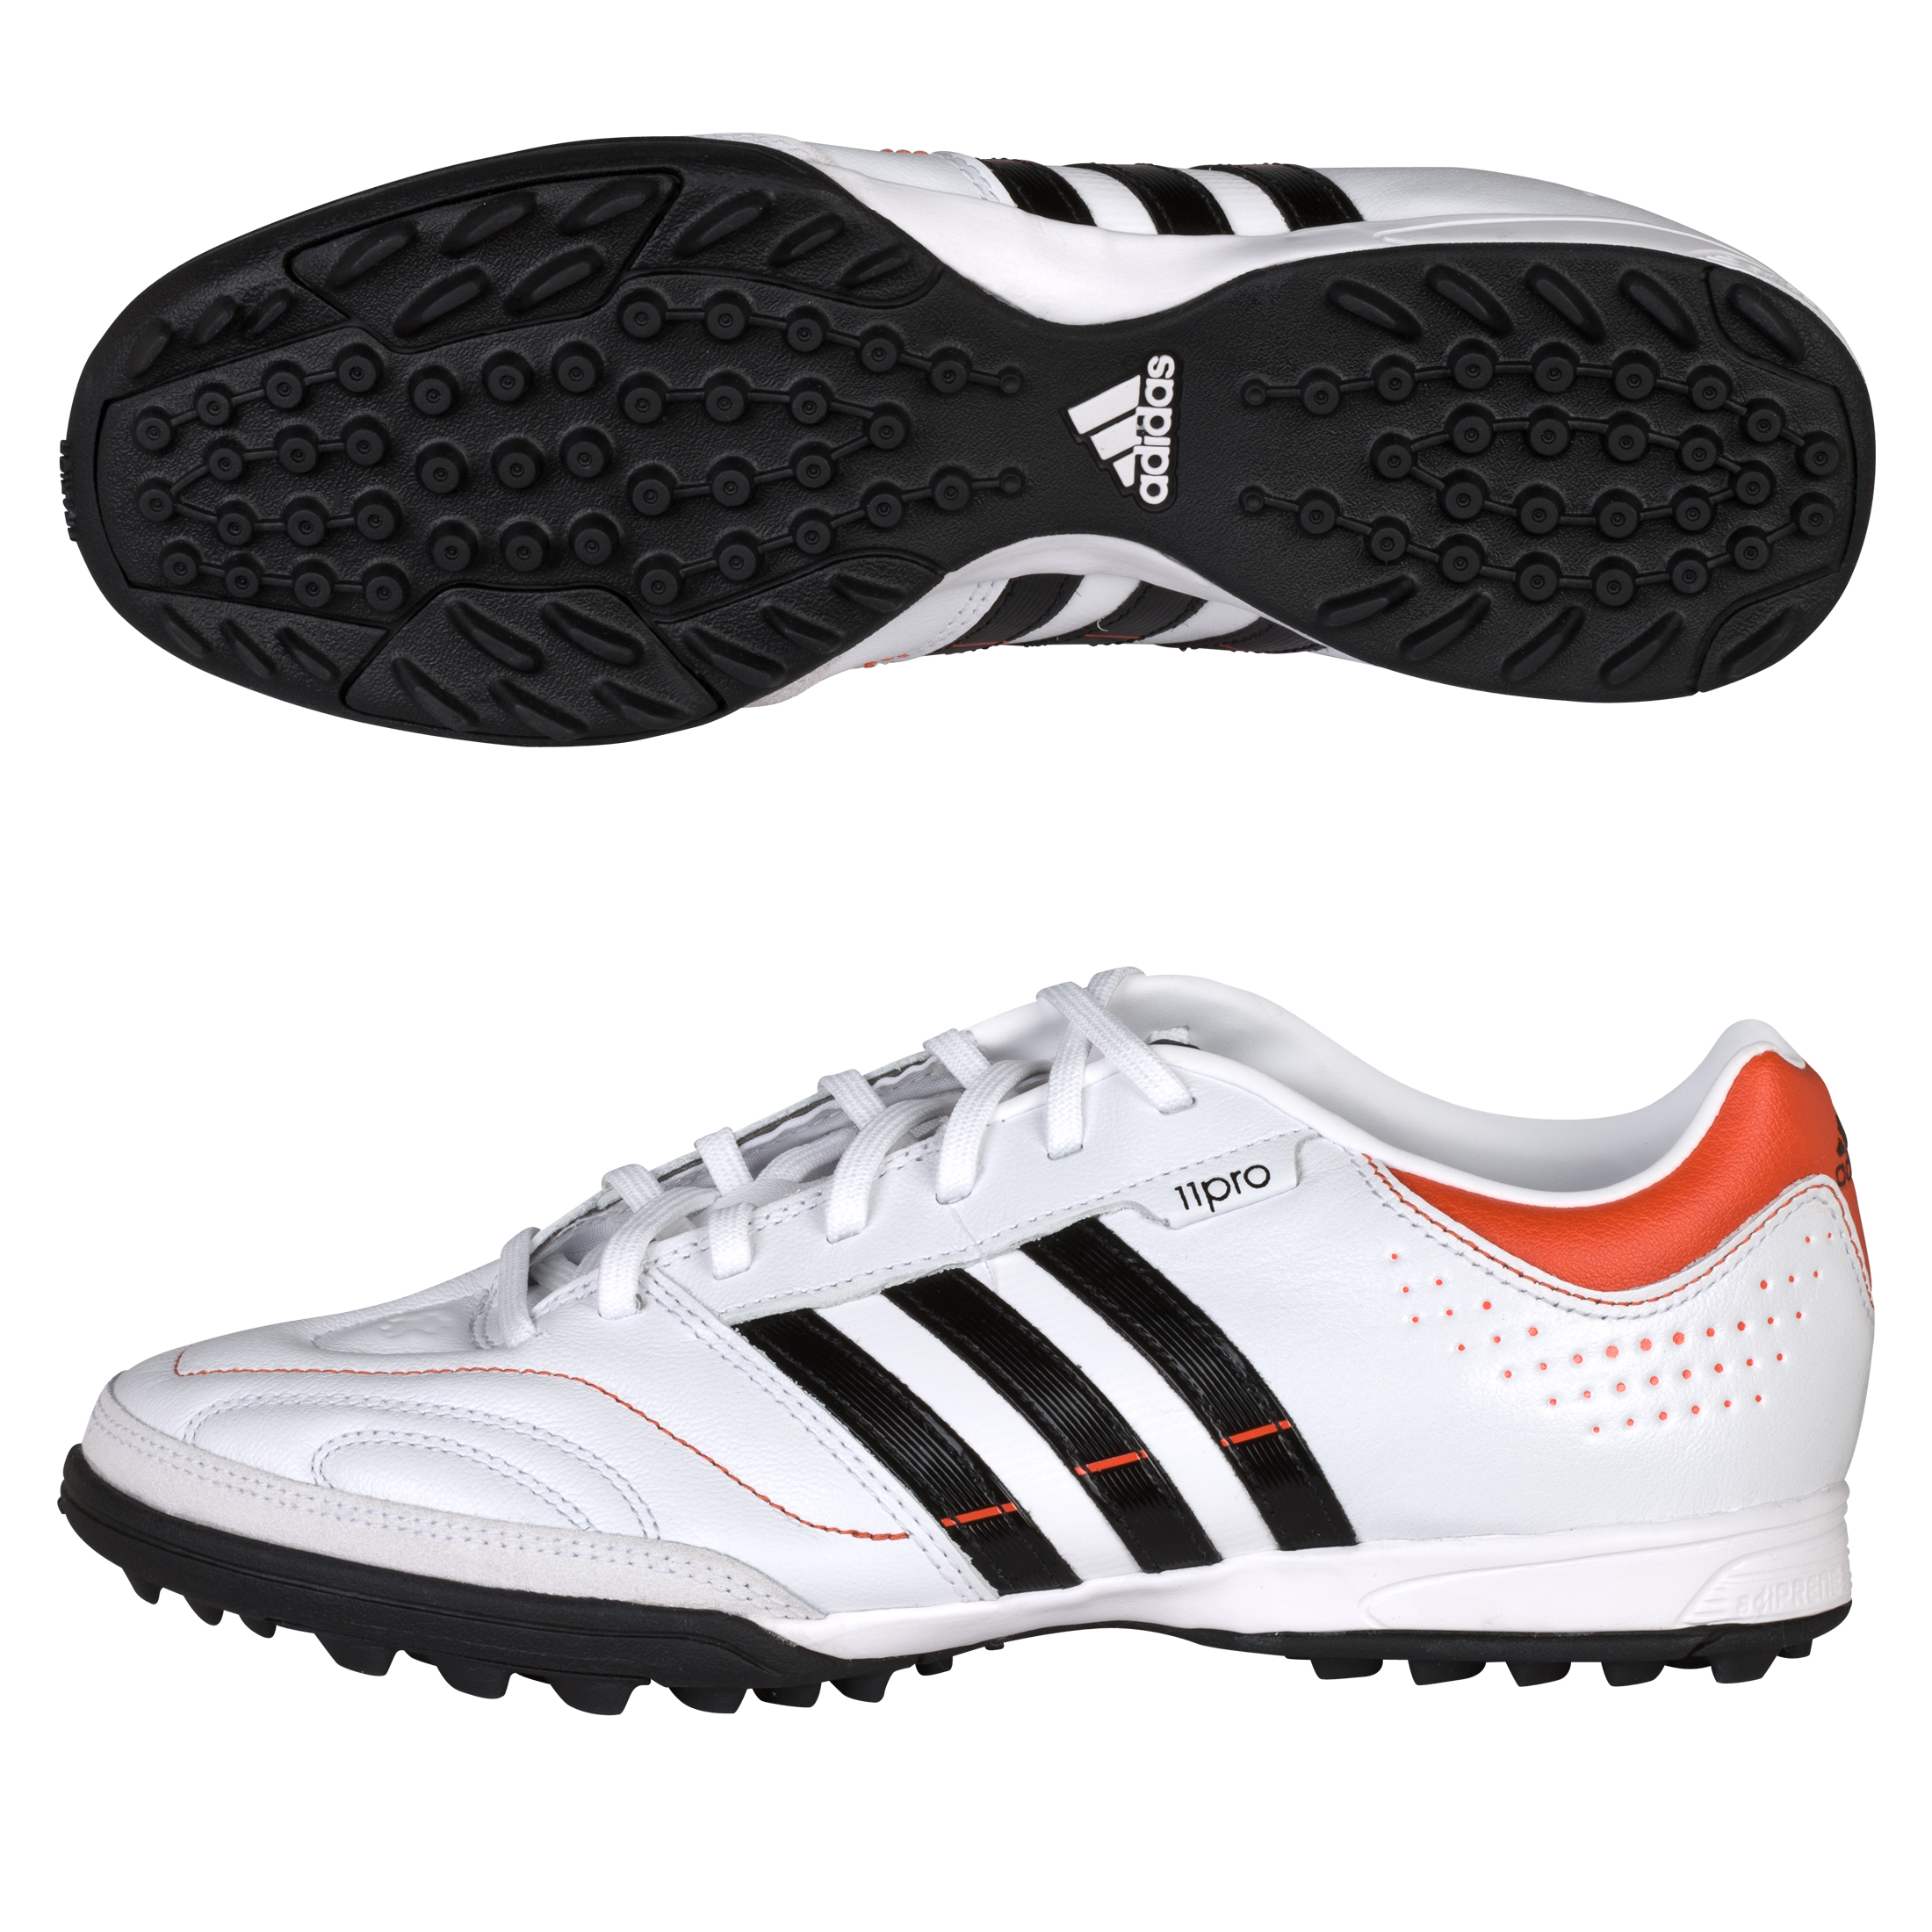 adidas 11Nova TRX Astro Turf Trainers - Running White/Black 1/High Energy S12